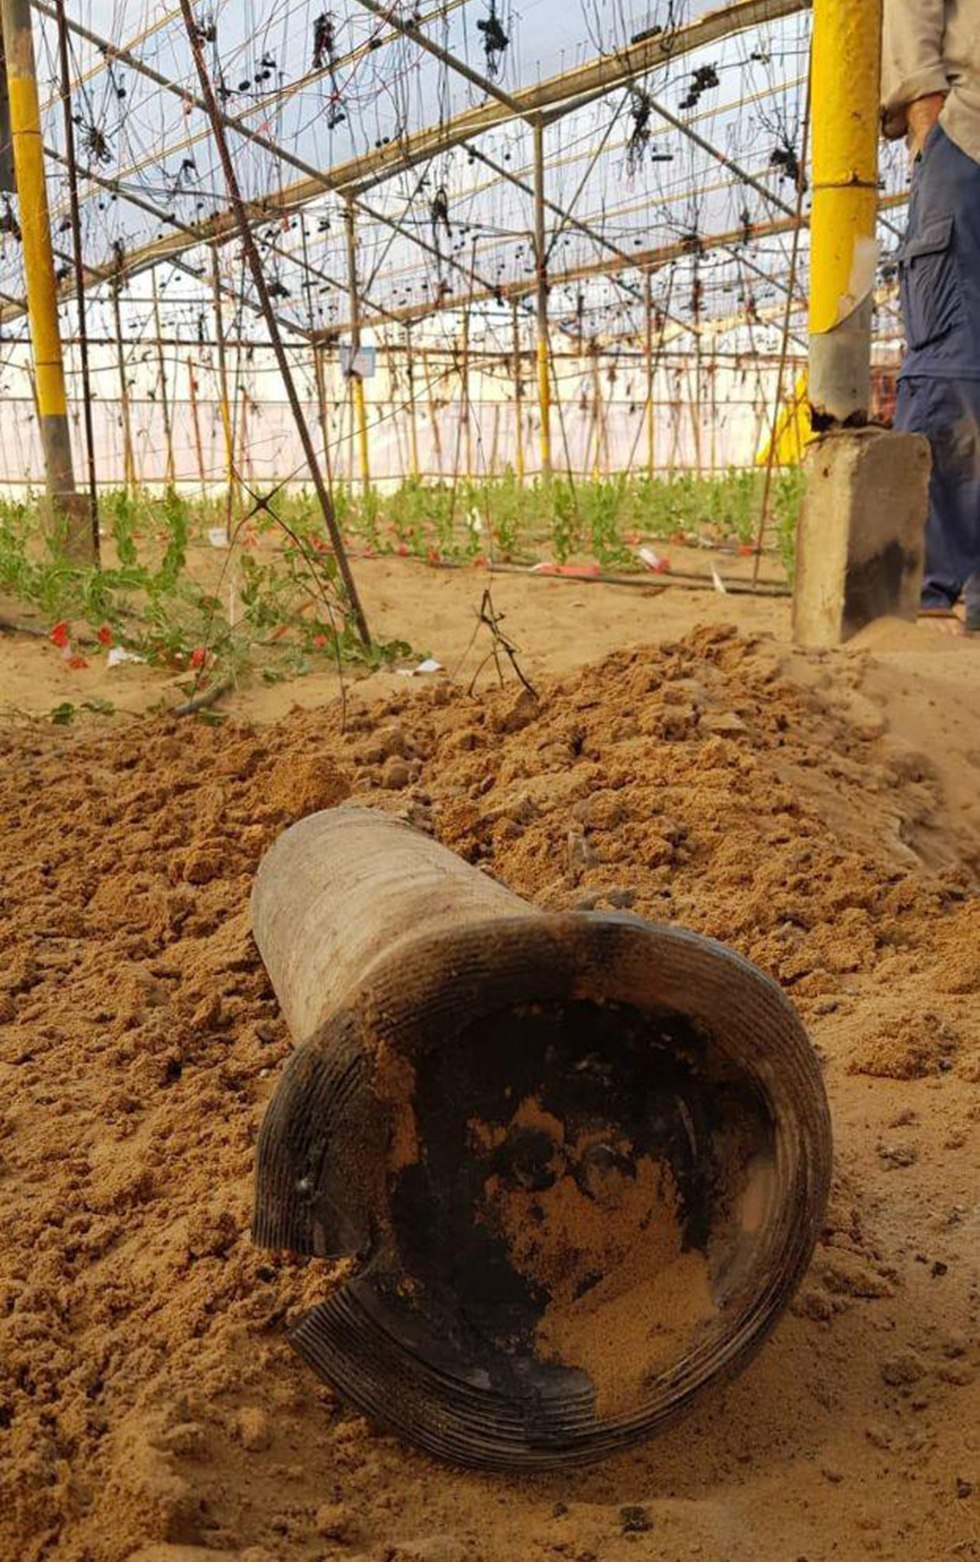 Rocket launched from Gaza (Photo: Netiv HaAsara security )